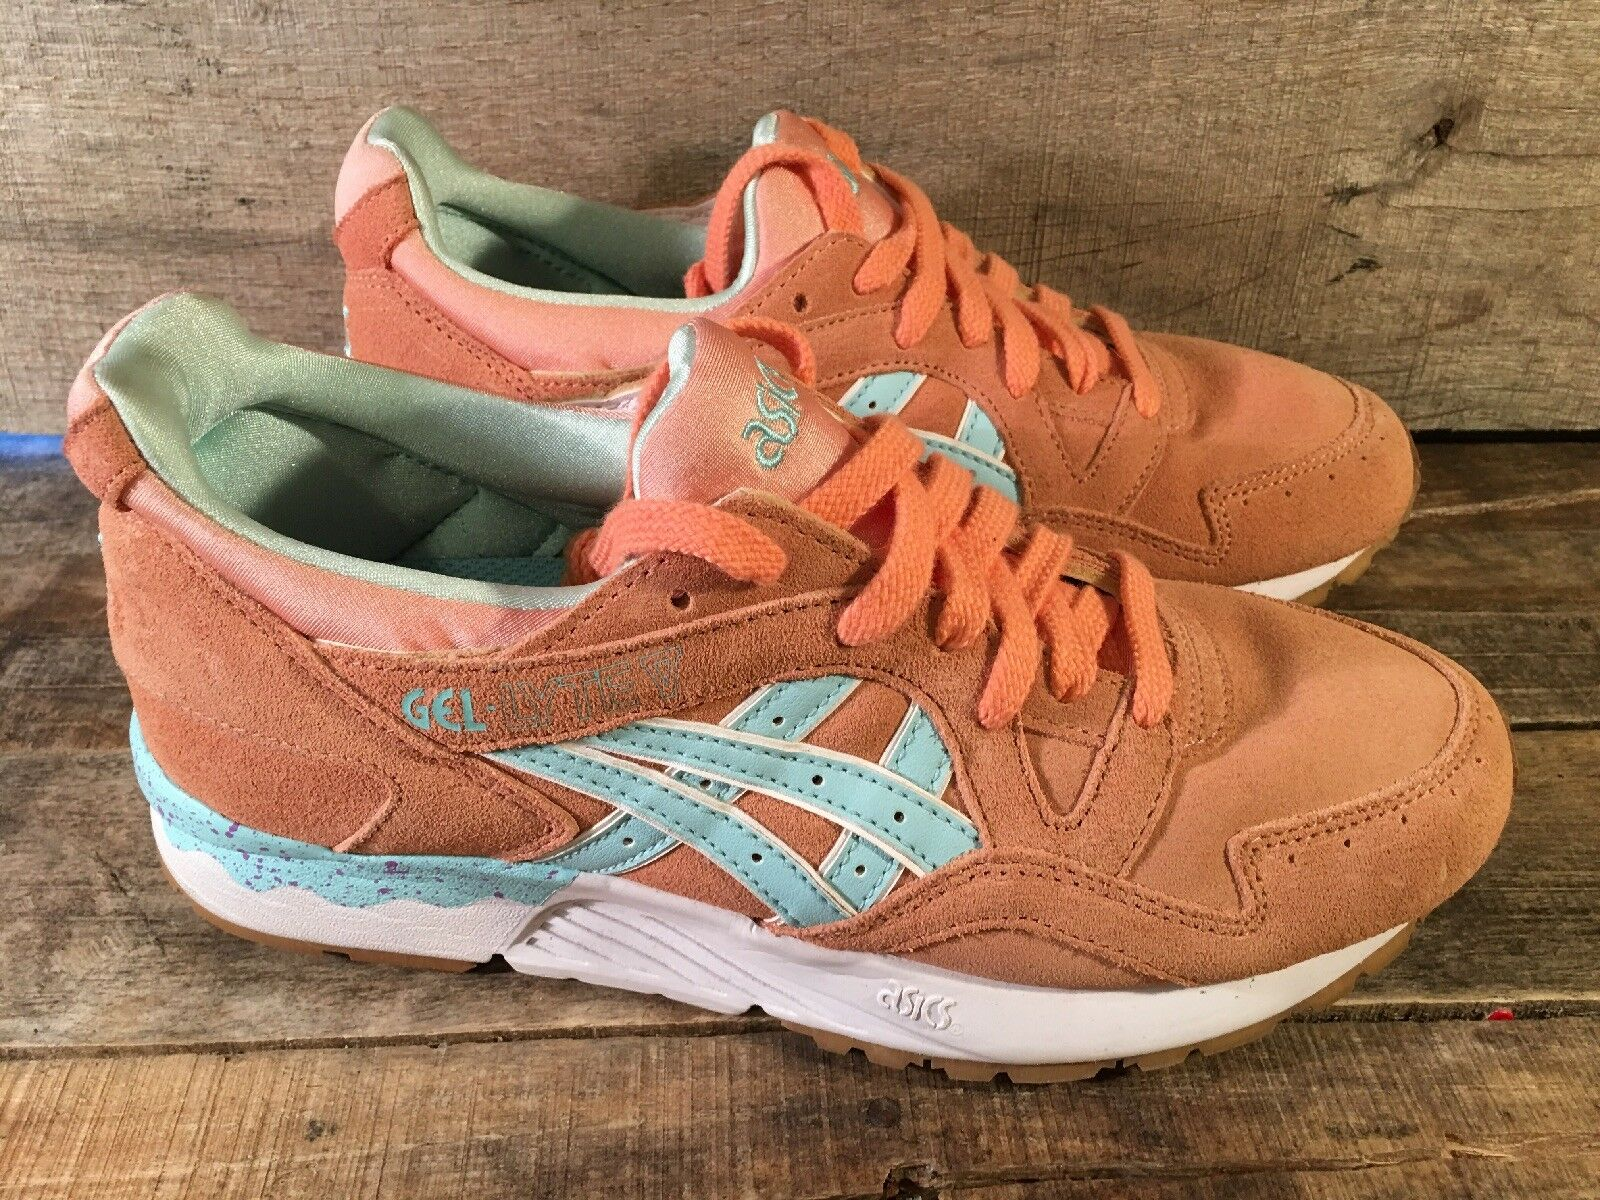 ASICS Gel-Lyt V Easter Pack Coral shoes Size 6.5 H504K